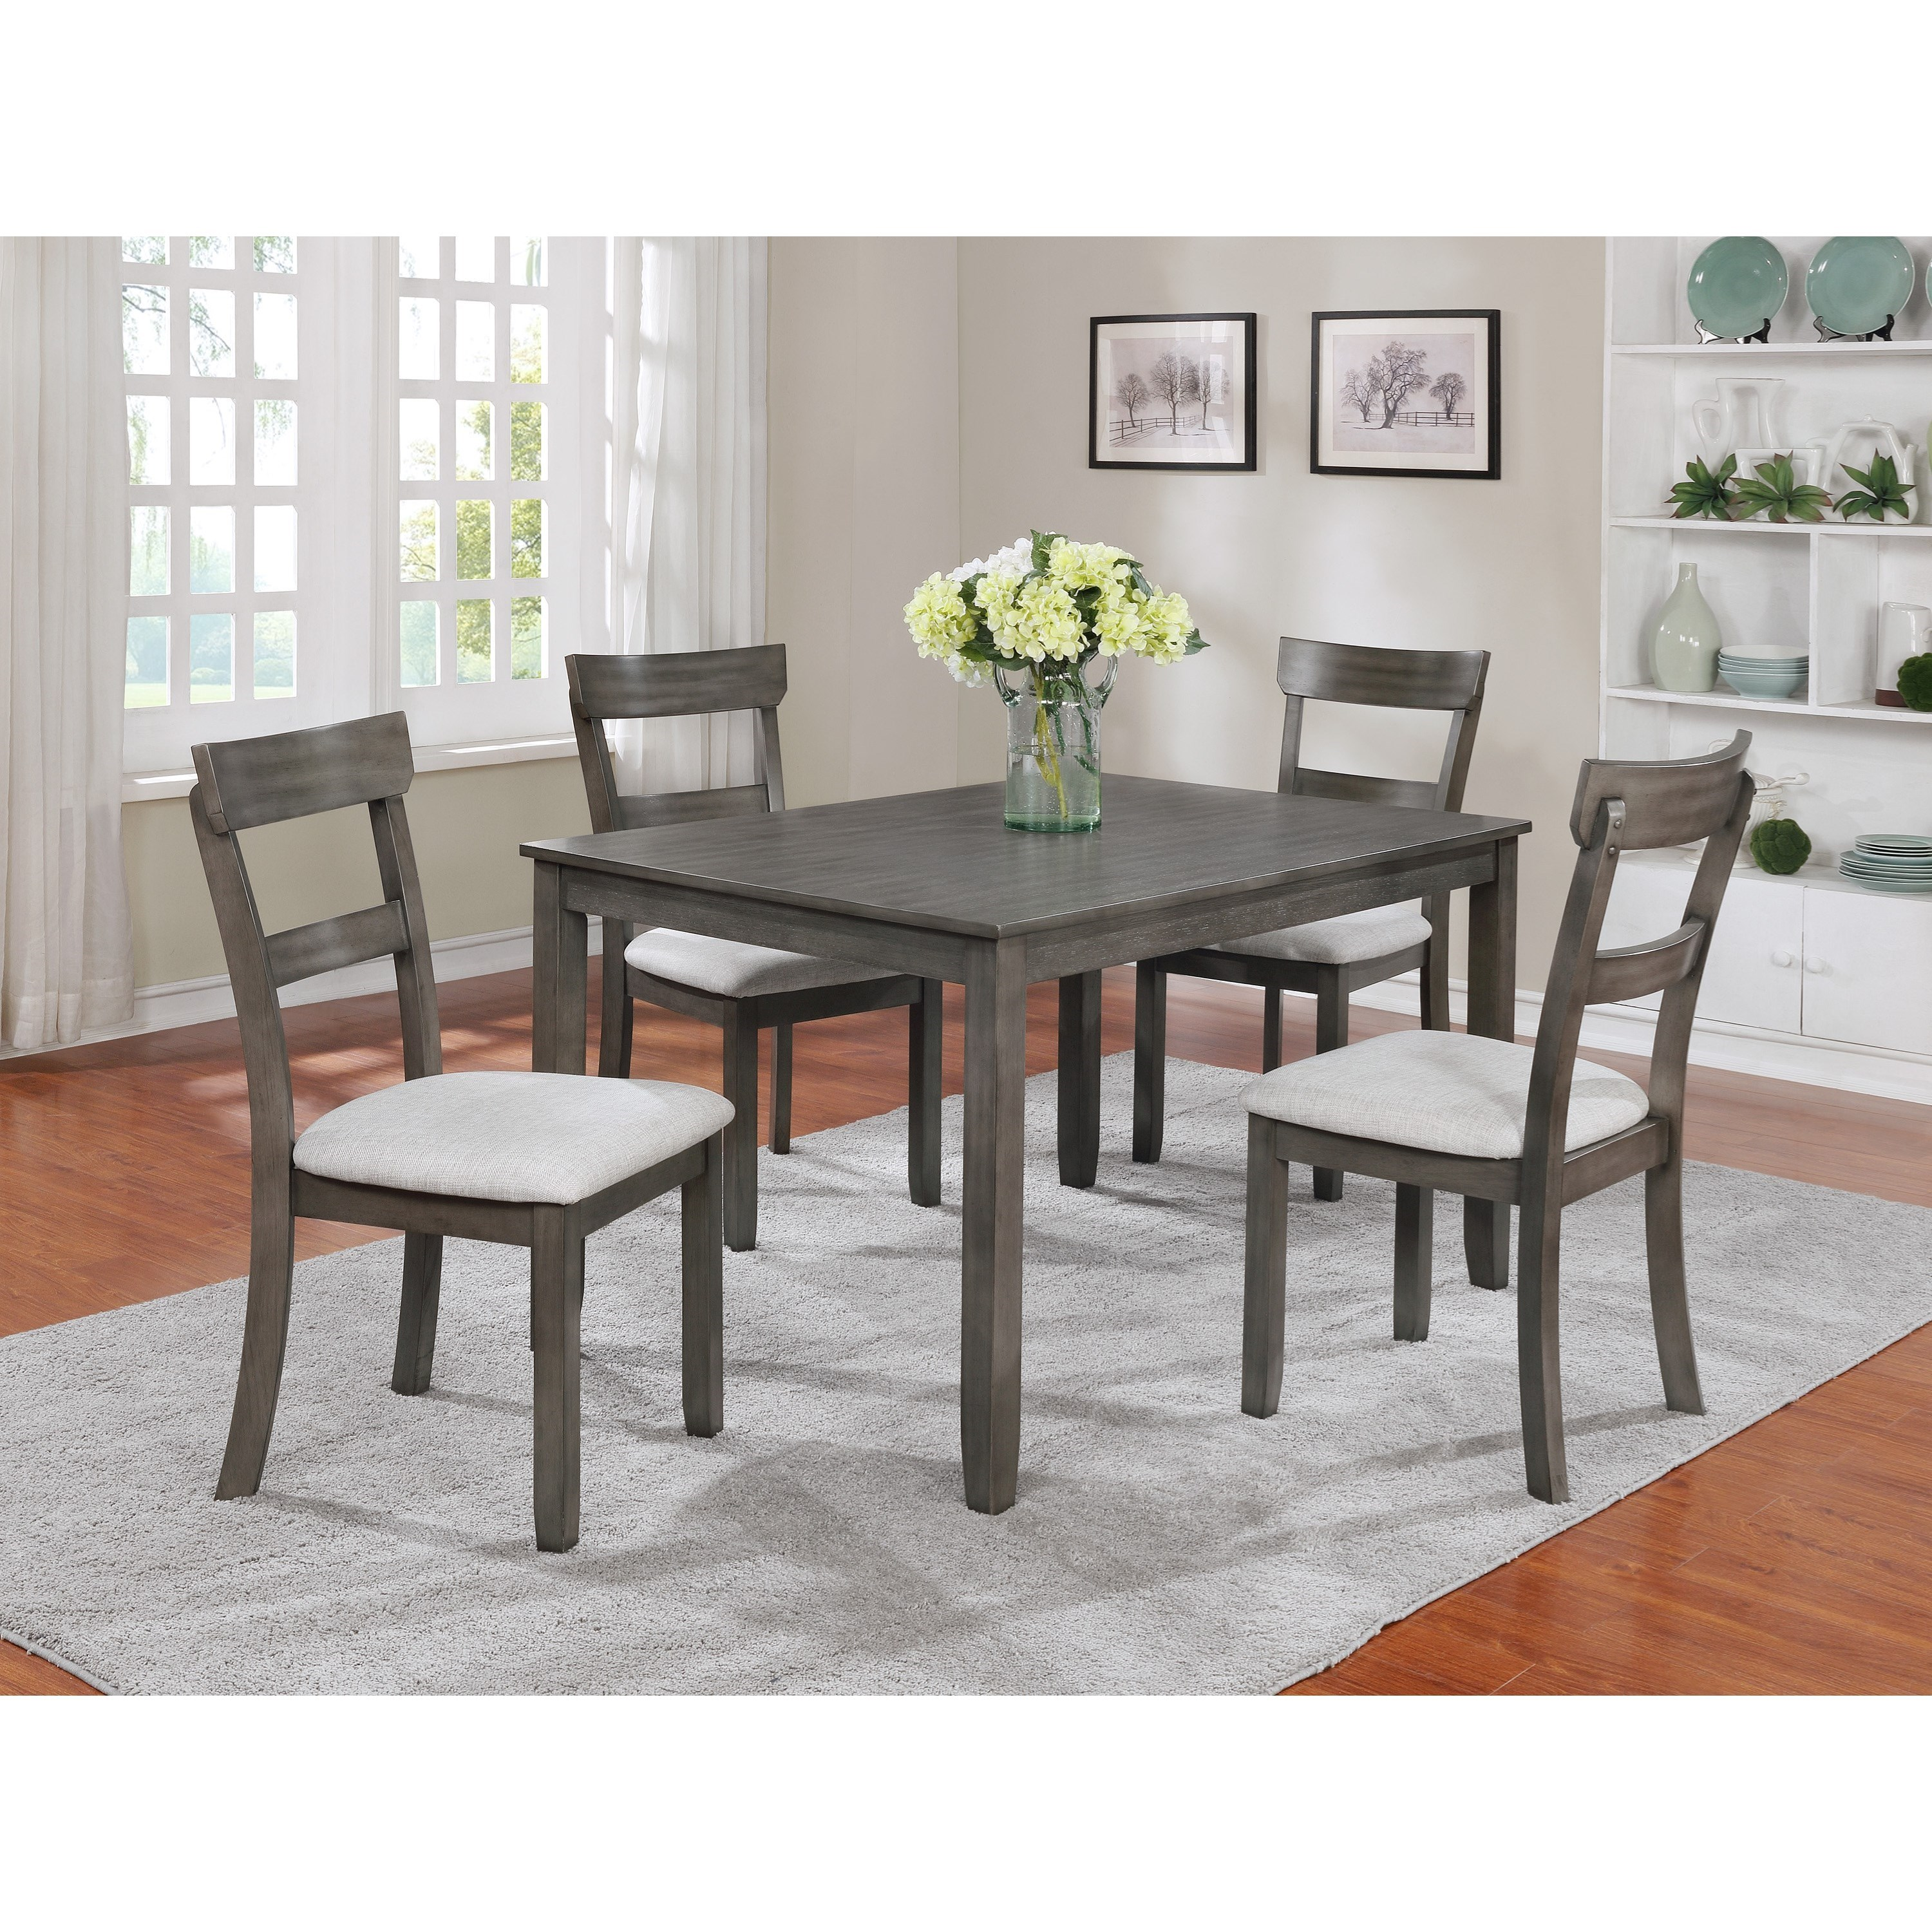 Henderson 5 Piece Dining Table Set by Crown Mark at Northeast Factory Direct